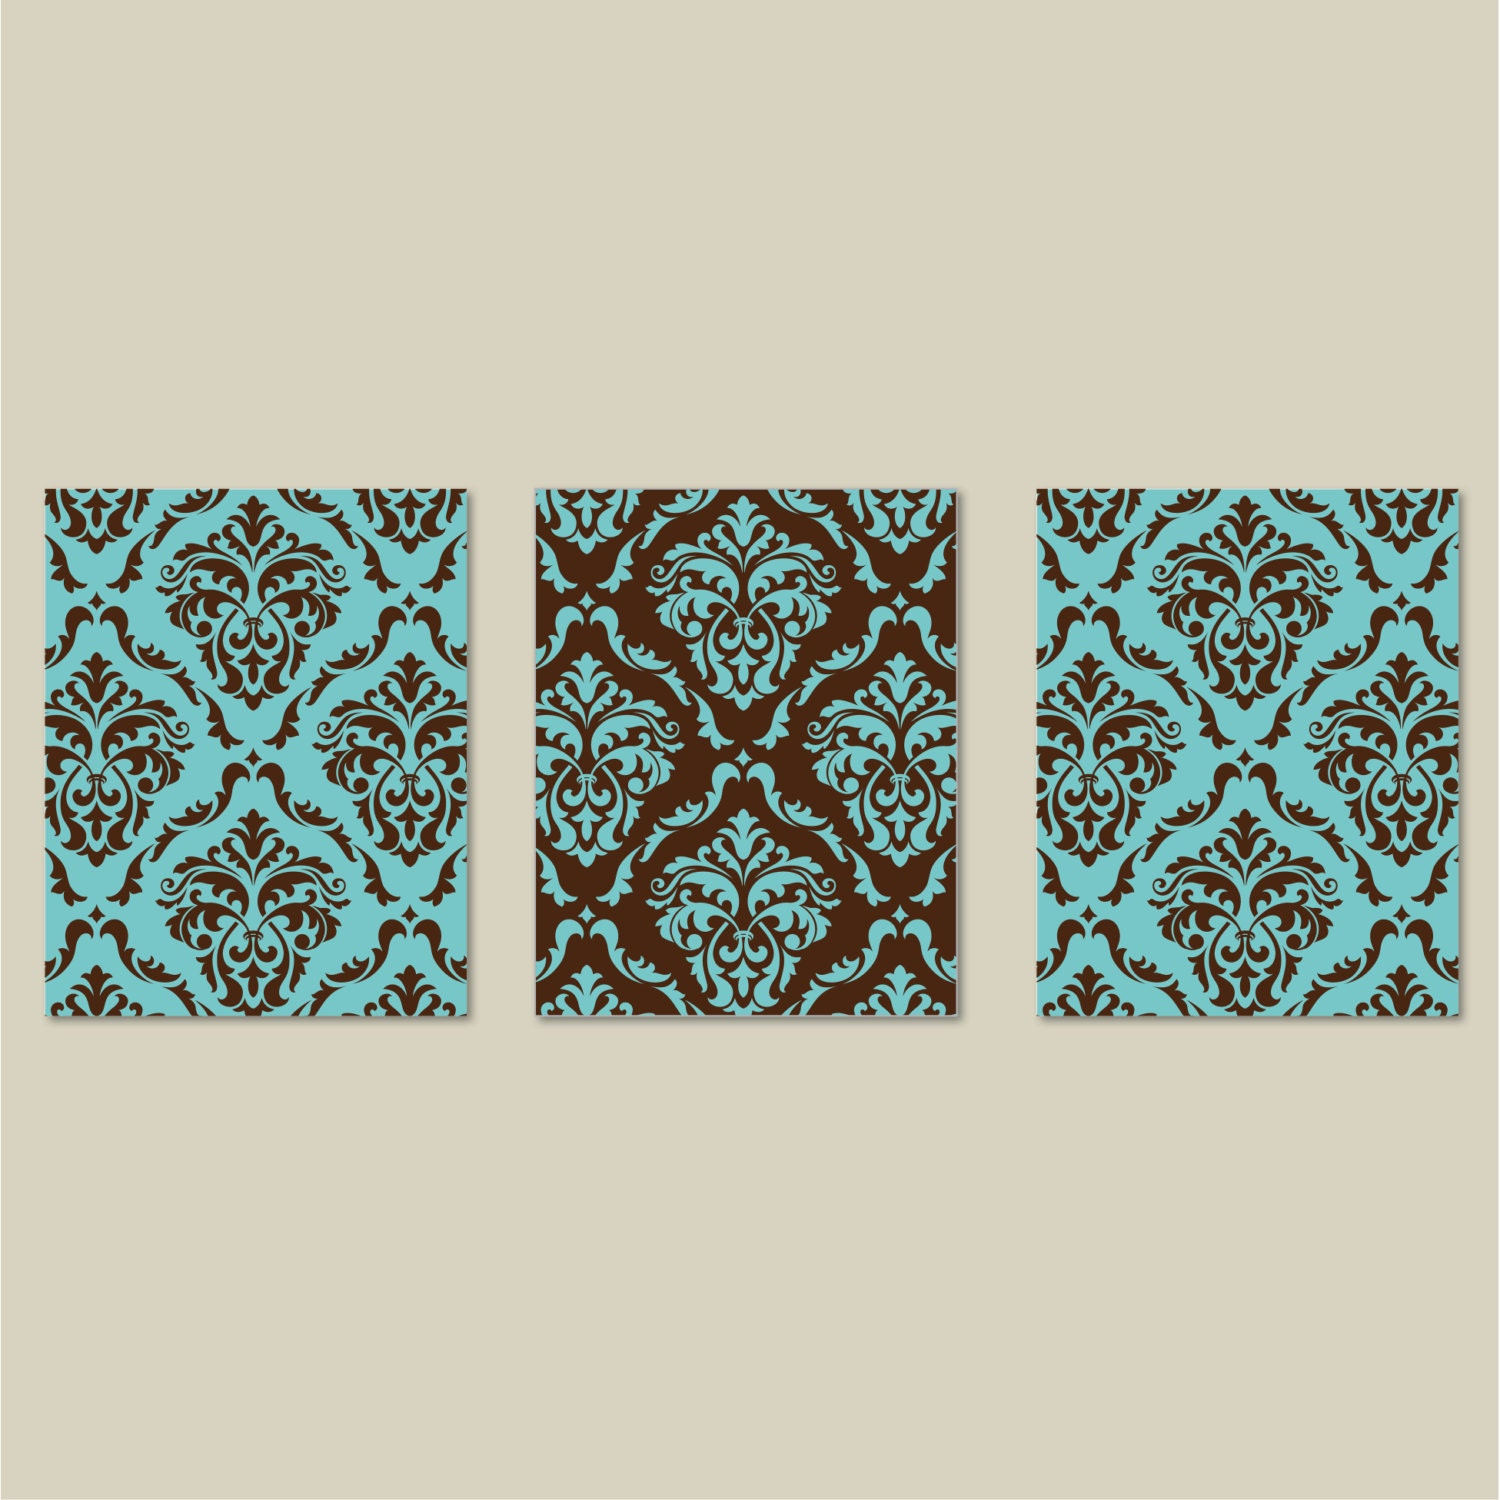 brown and teal blue damask print trio bedroom wall decor. Black Bedroom Furniture Sets. Home Design Ideas